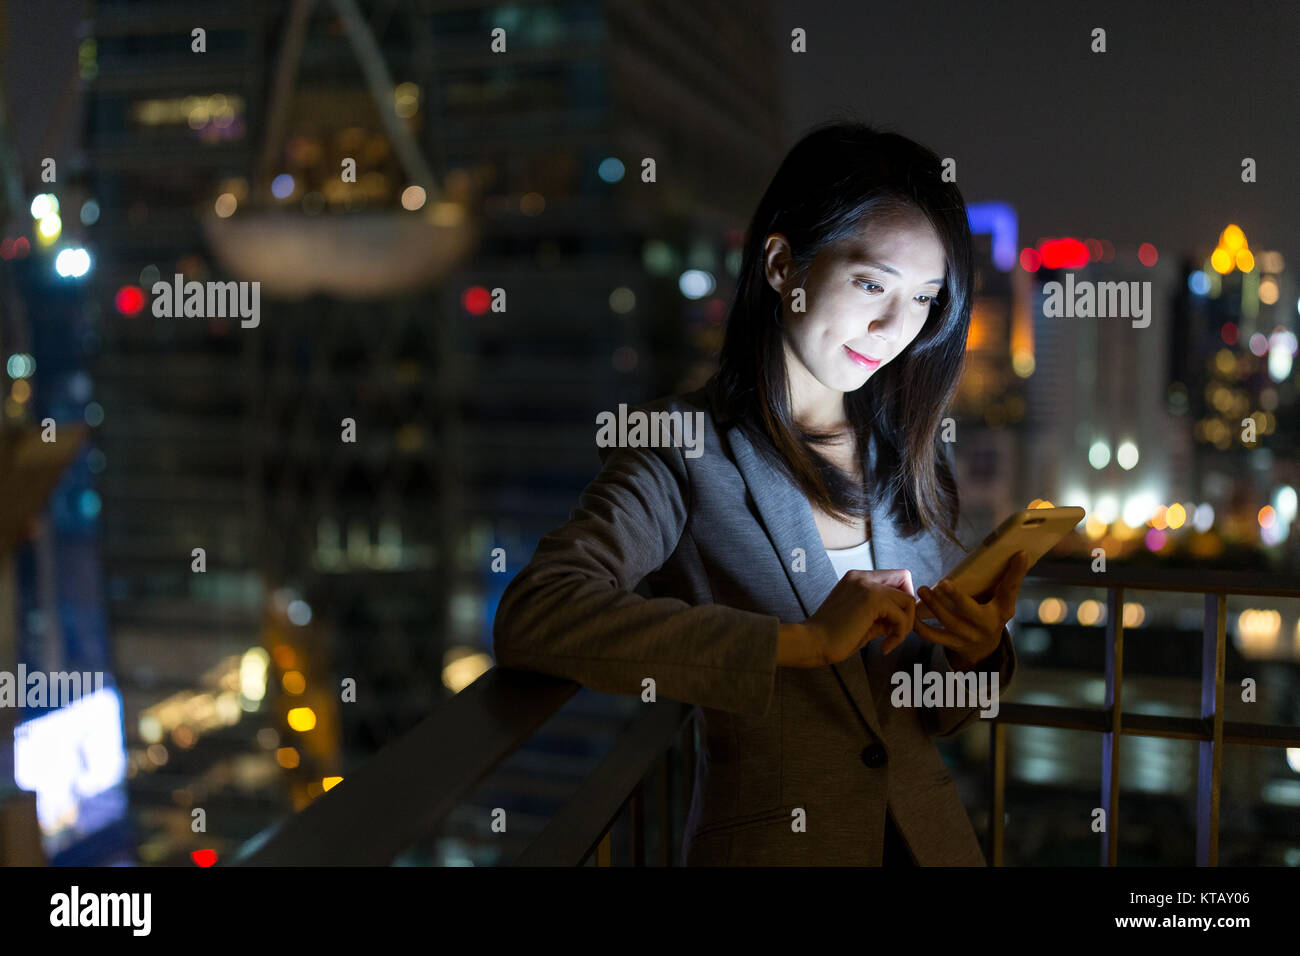 Businesswoman working on cellphone at night - Stock Image